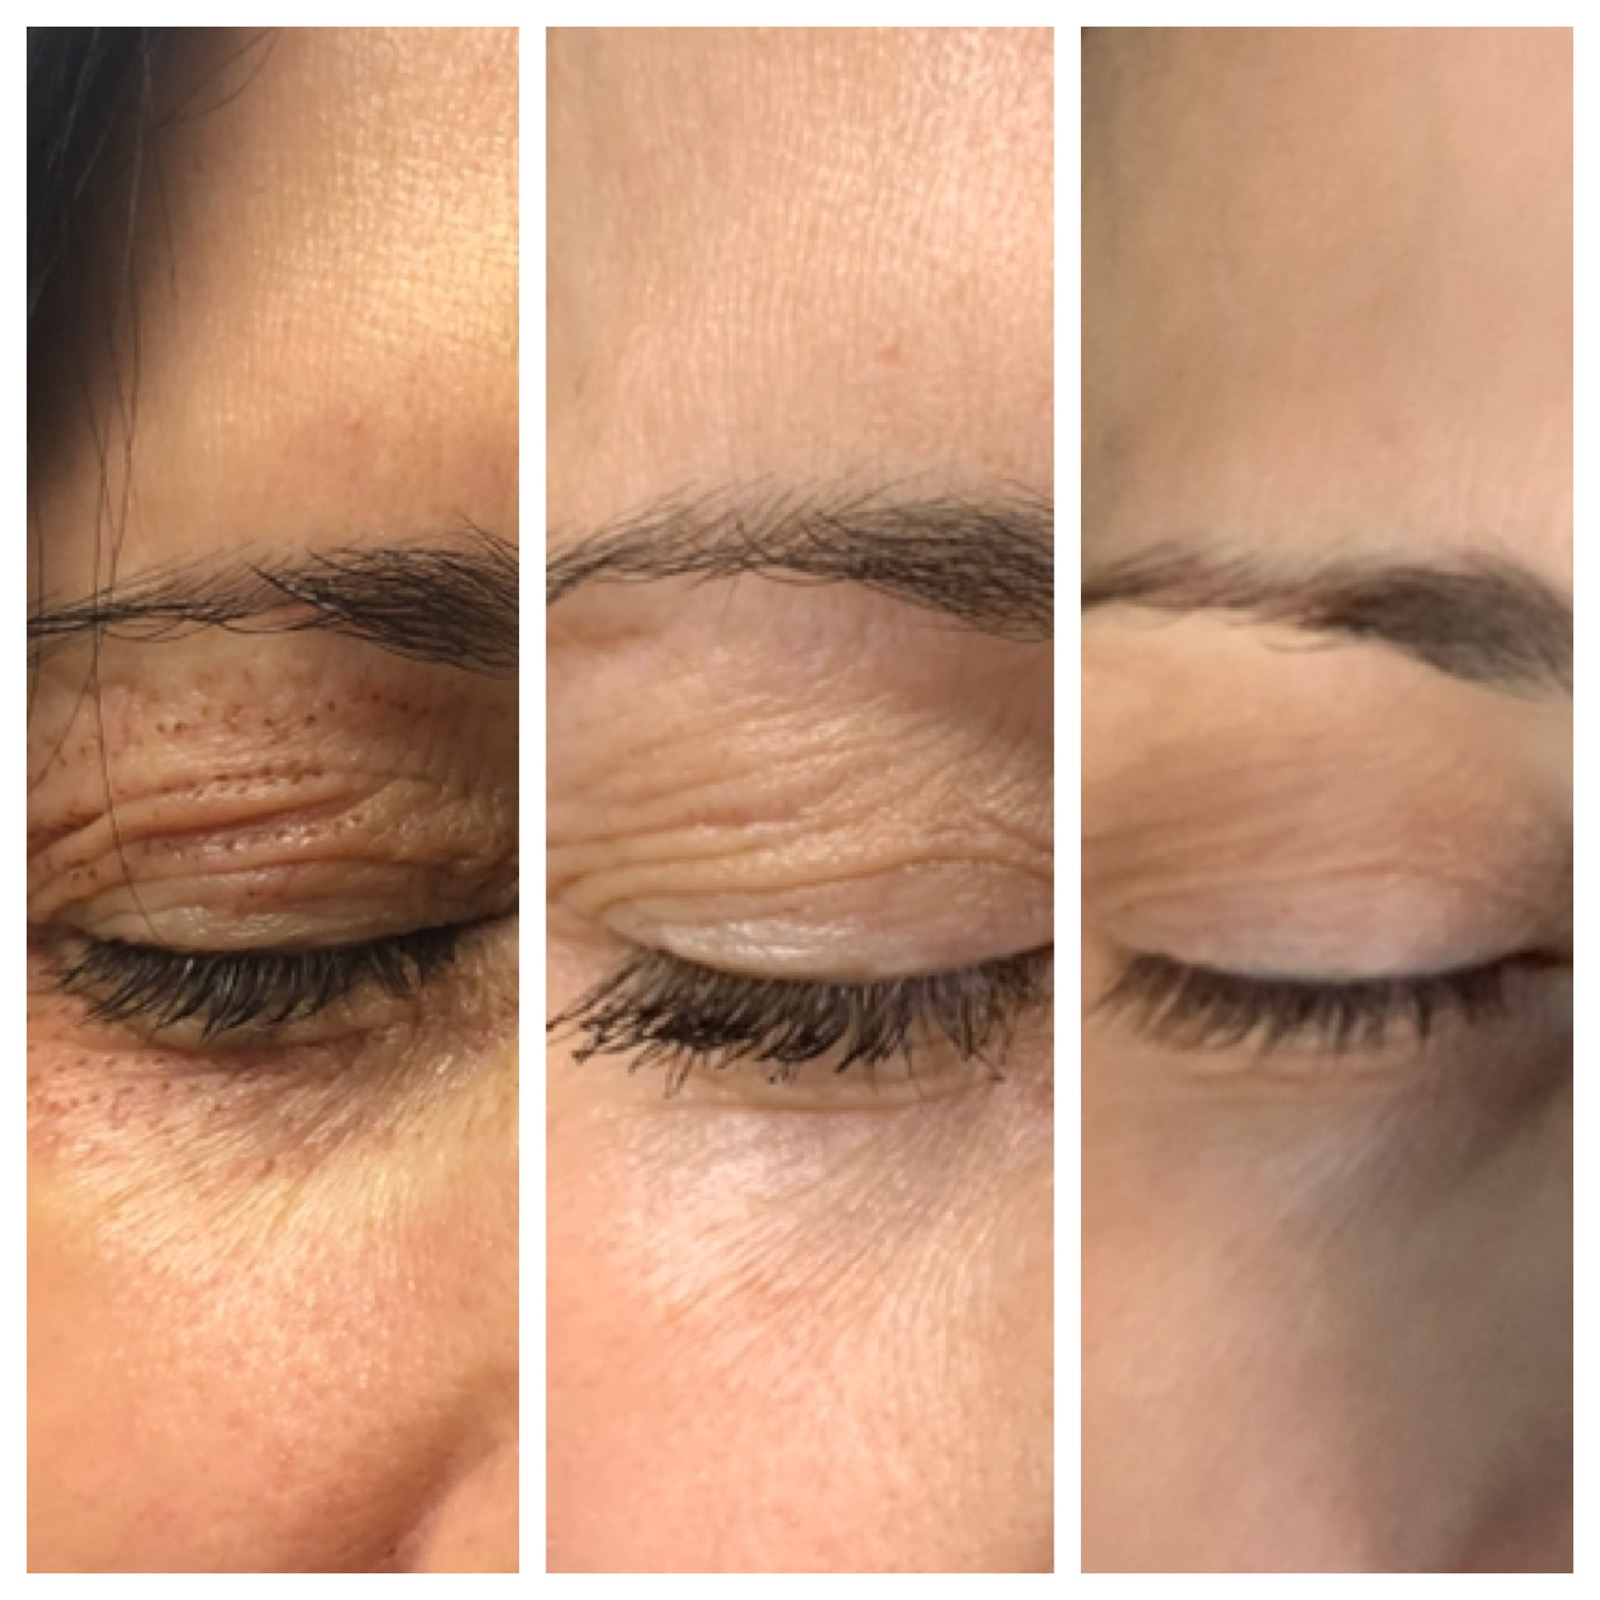 Plasma Pen Fibroblasting For Reducing Wrinkles